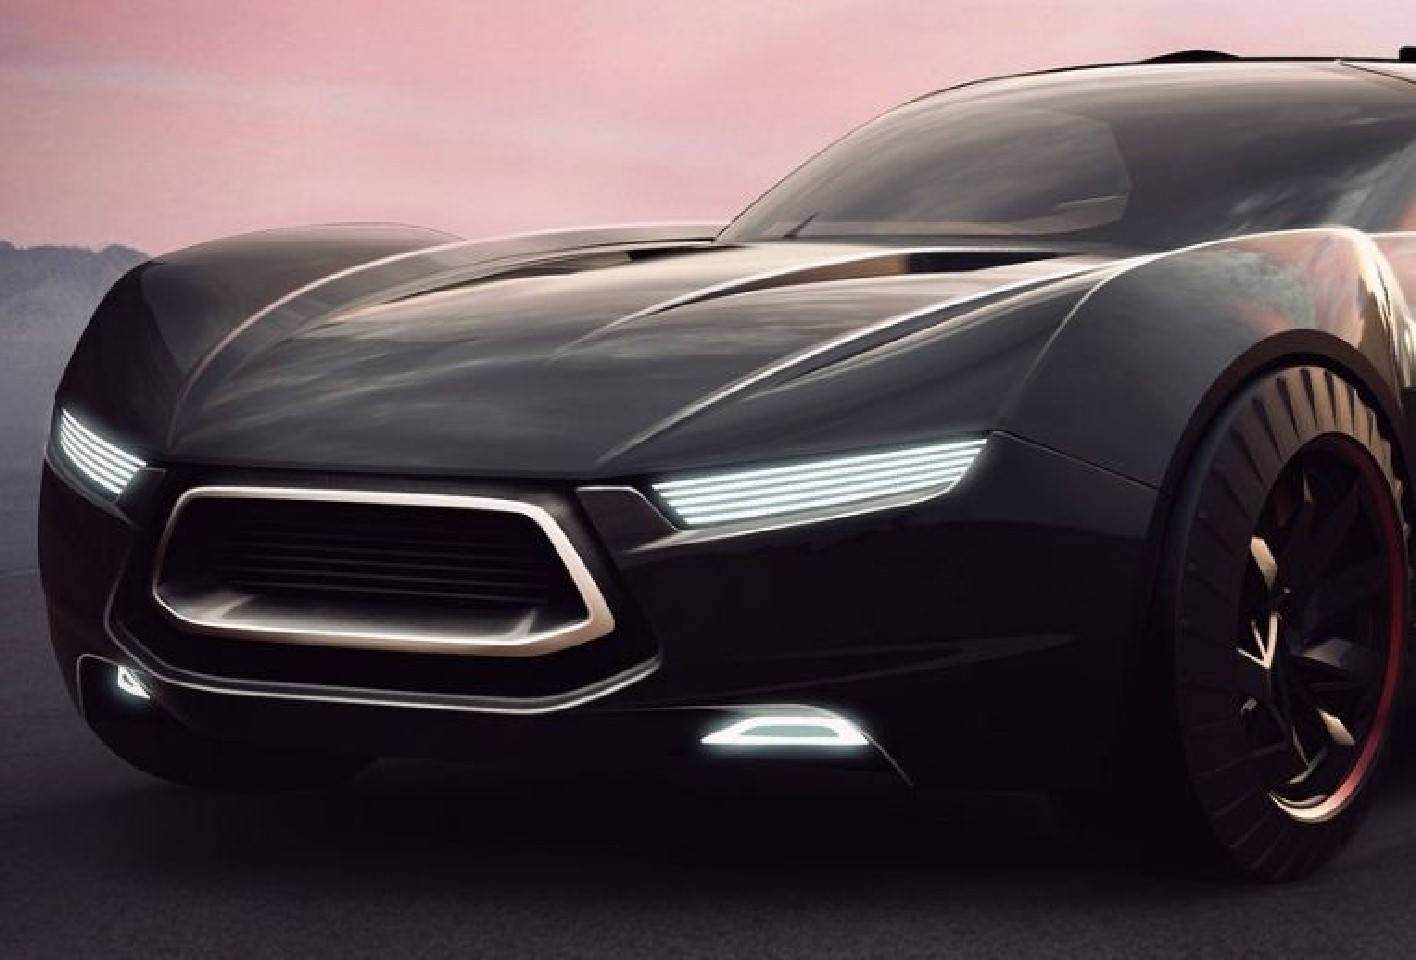 2019 Ford Mad Max Concept photo - 2